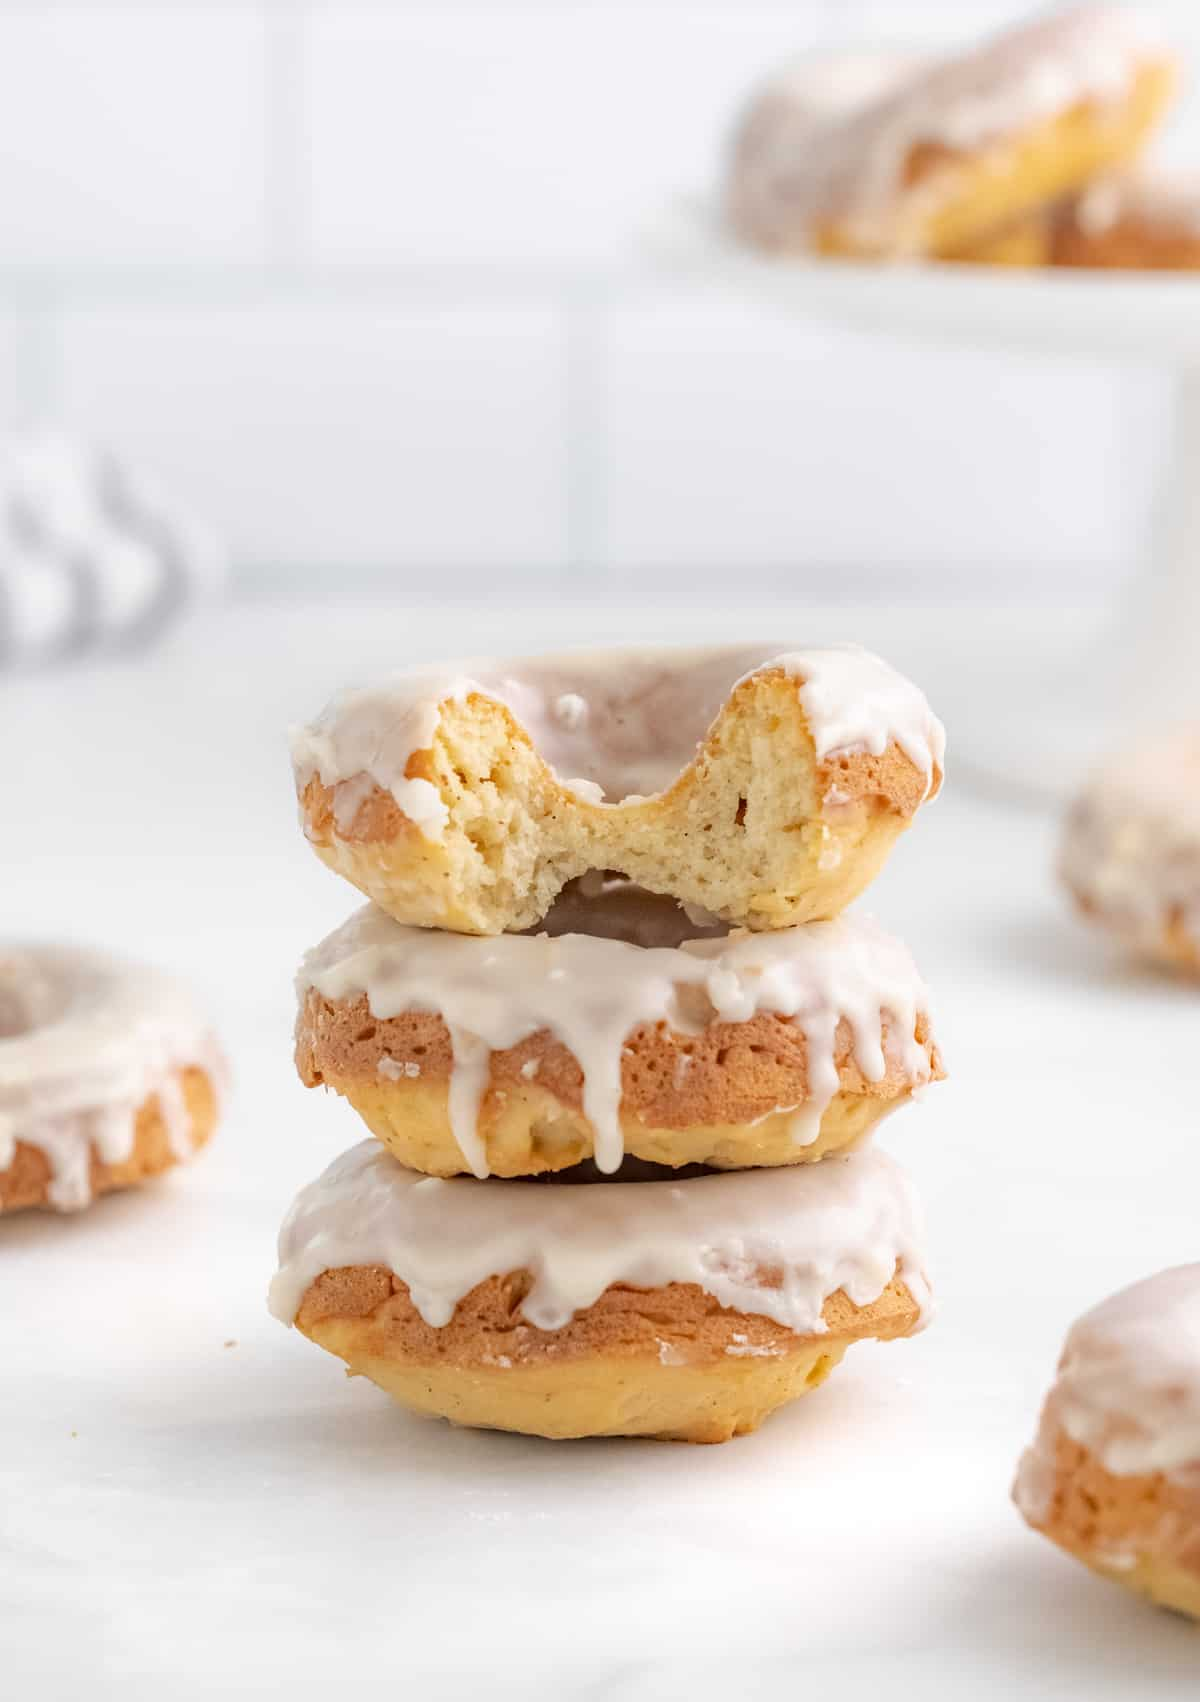 Stacked Baked Donuts with bite taken out of top one